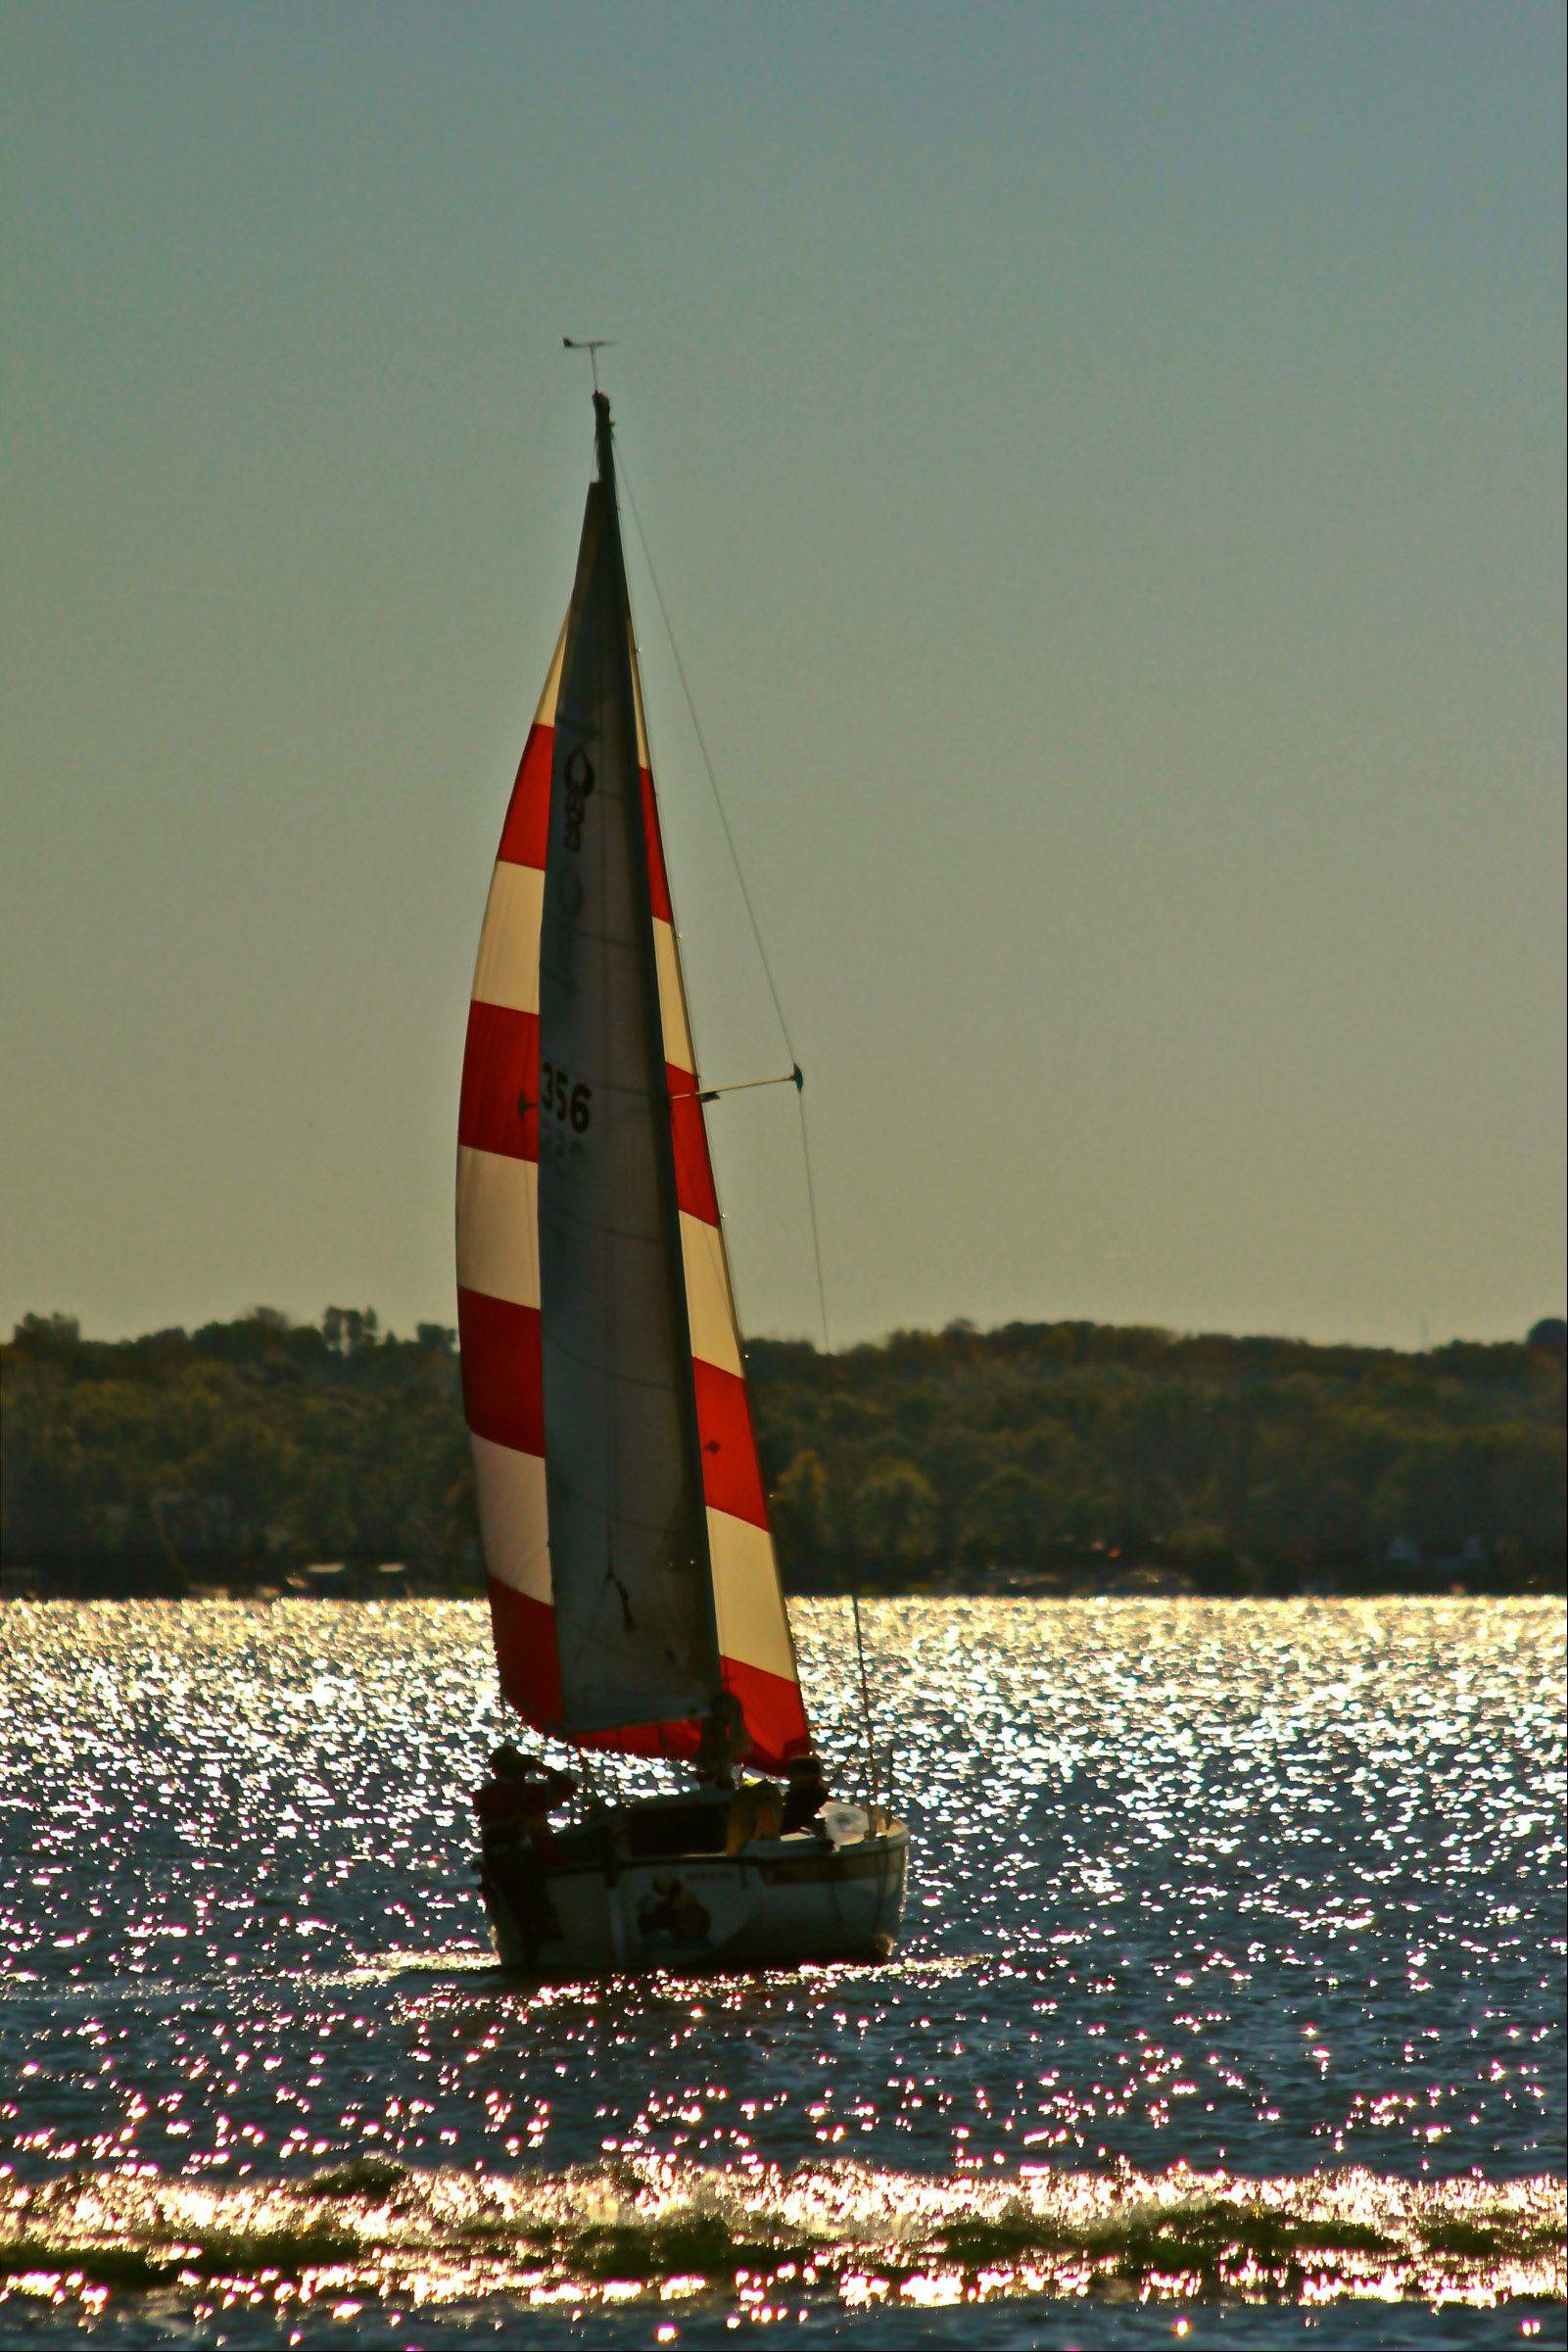 A sail boat moves out into the sun at Lake Geneva. The sun highlighted the red sail and glistened off the water.